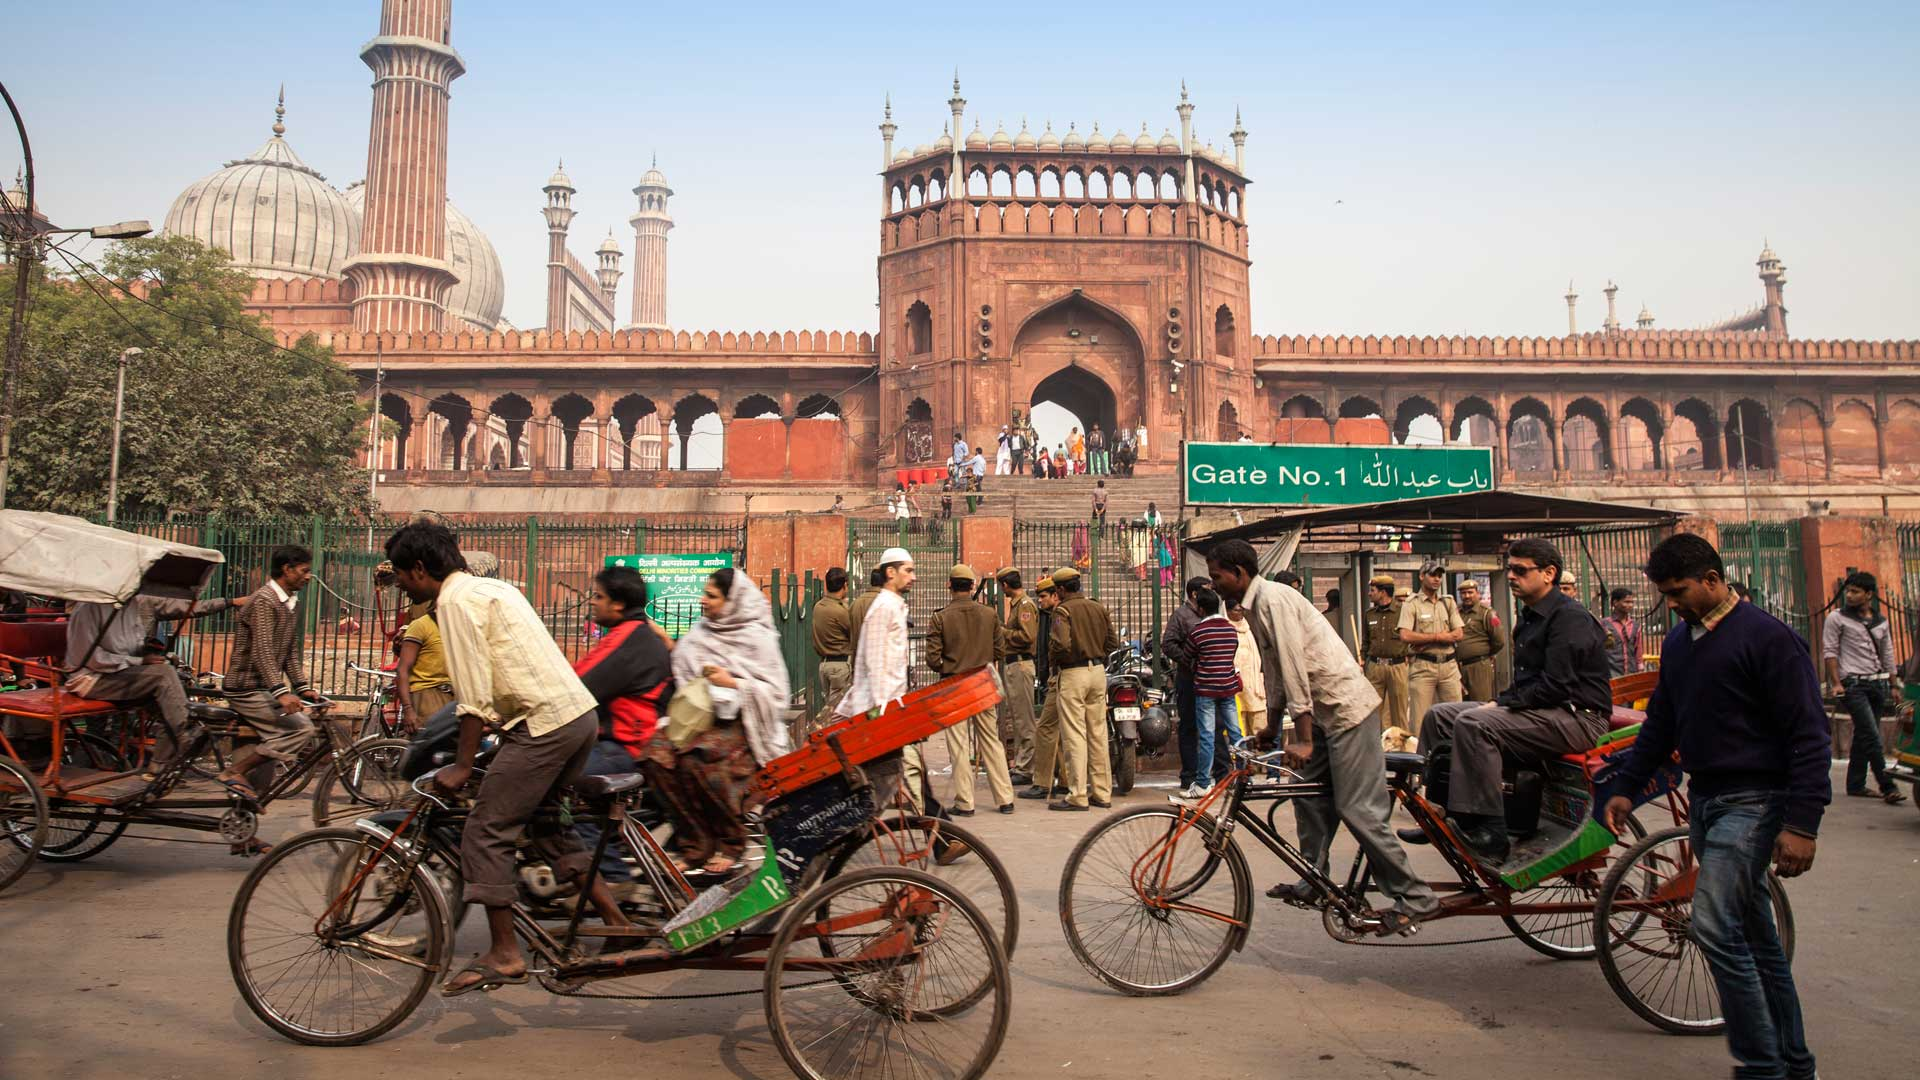 Rickshaws cycling past the Jama Masjid mosque in Old Delhi, India with GeoEx